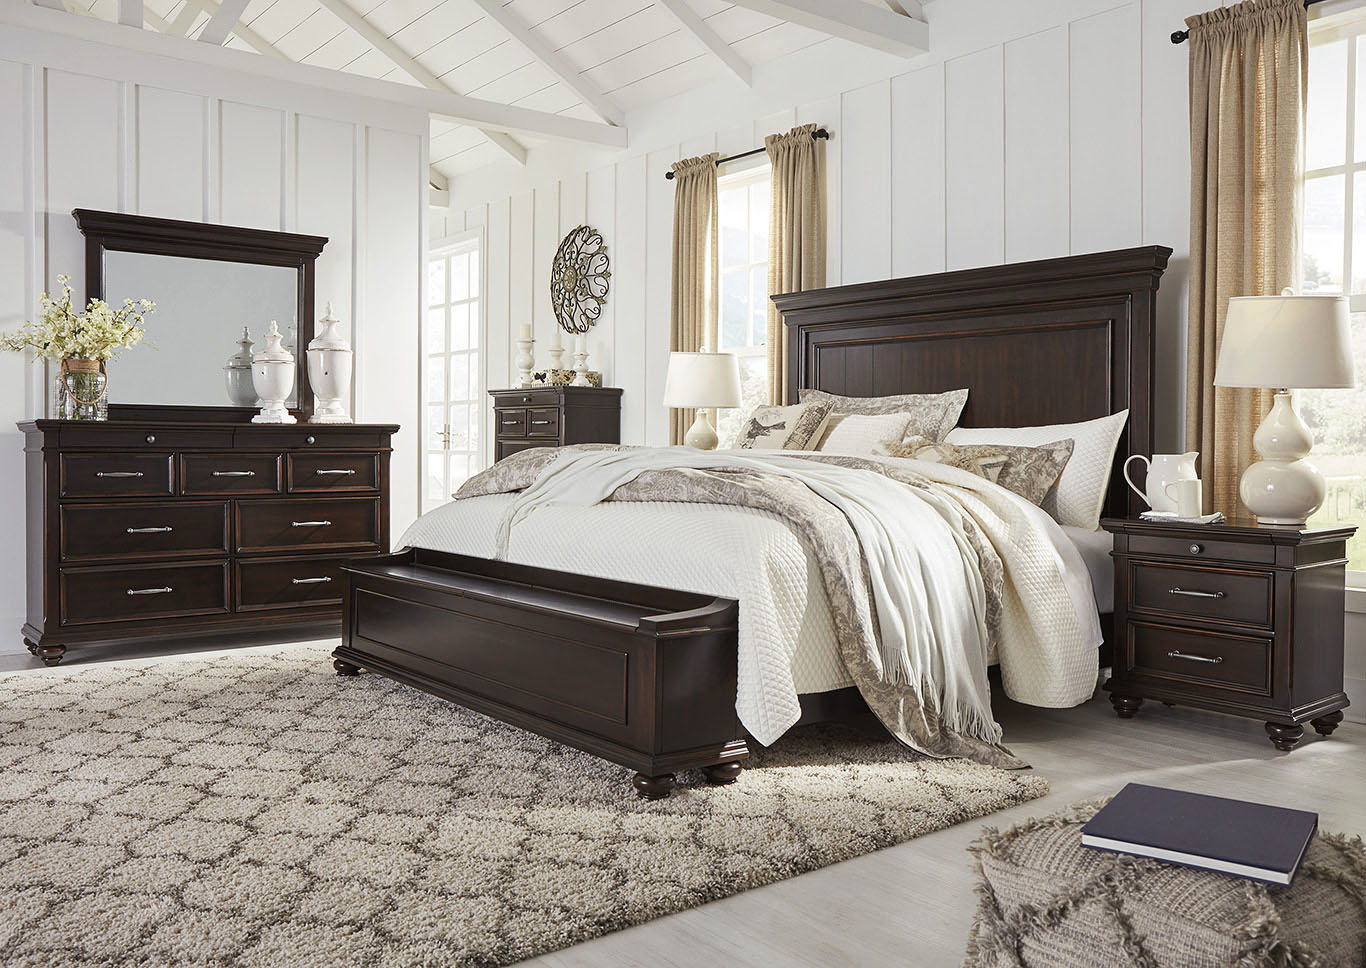 Brynhurst Brown Queen Storage Bed Dresser w/Mirror,Signature Design By Ashley